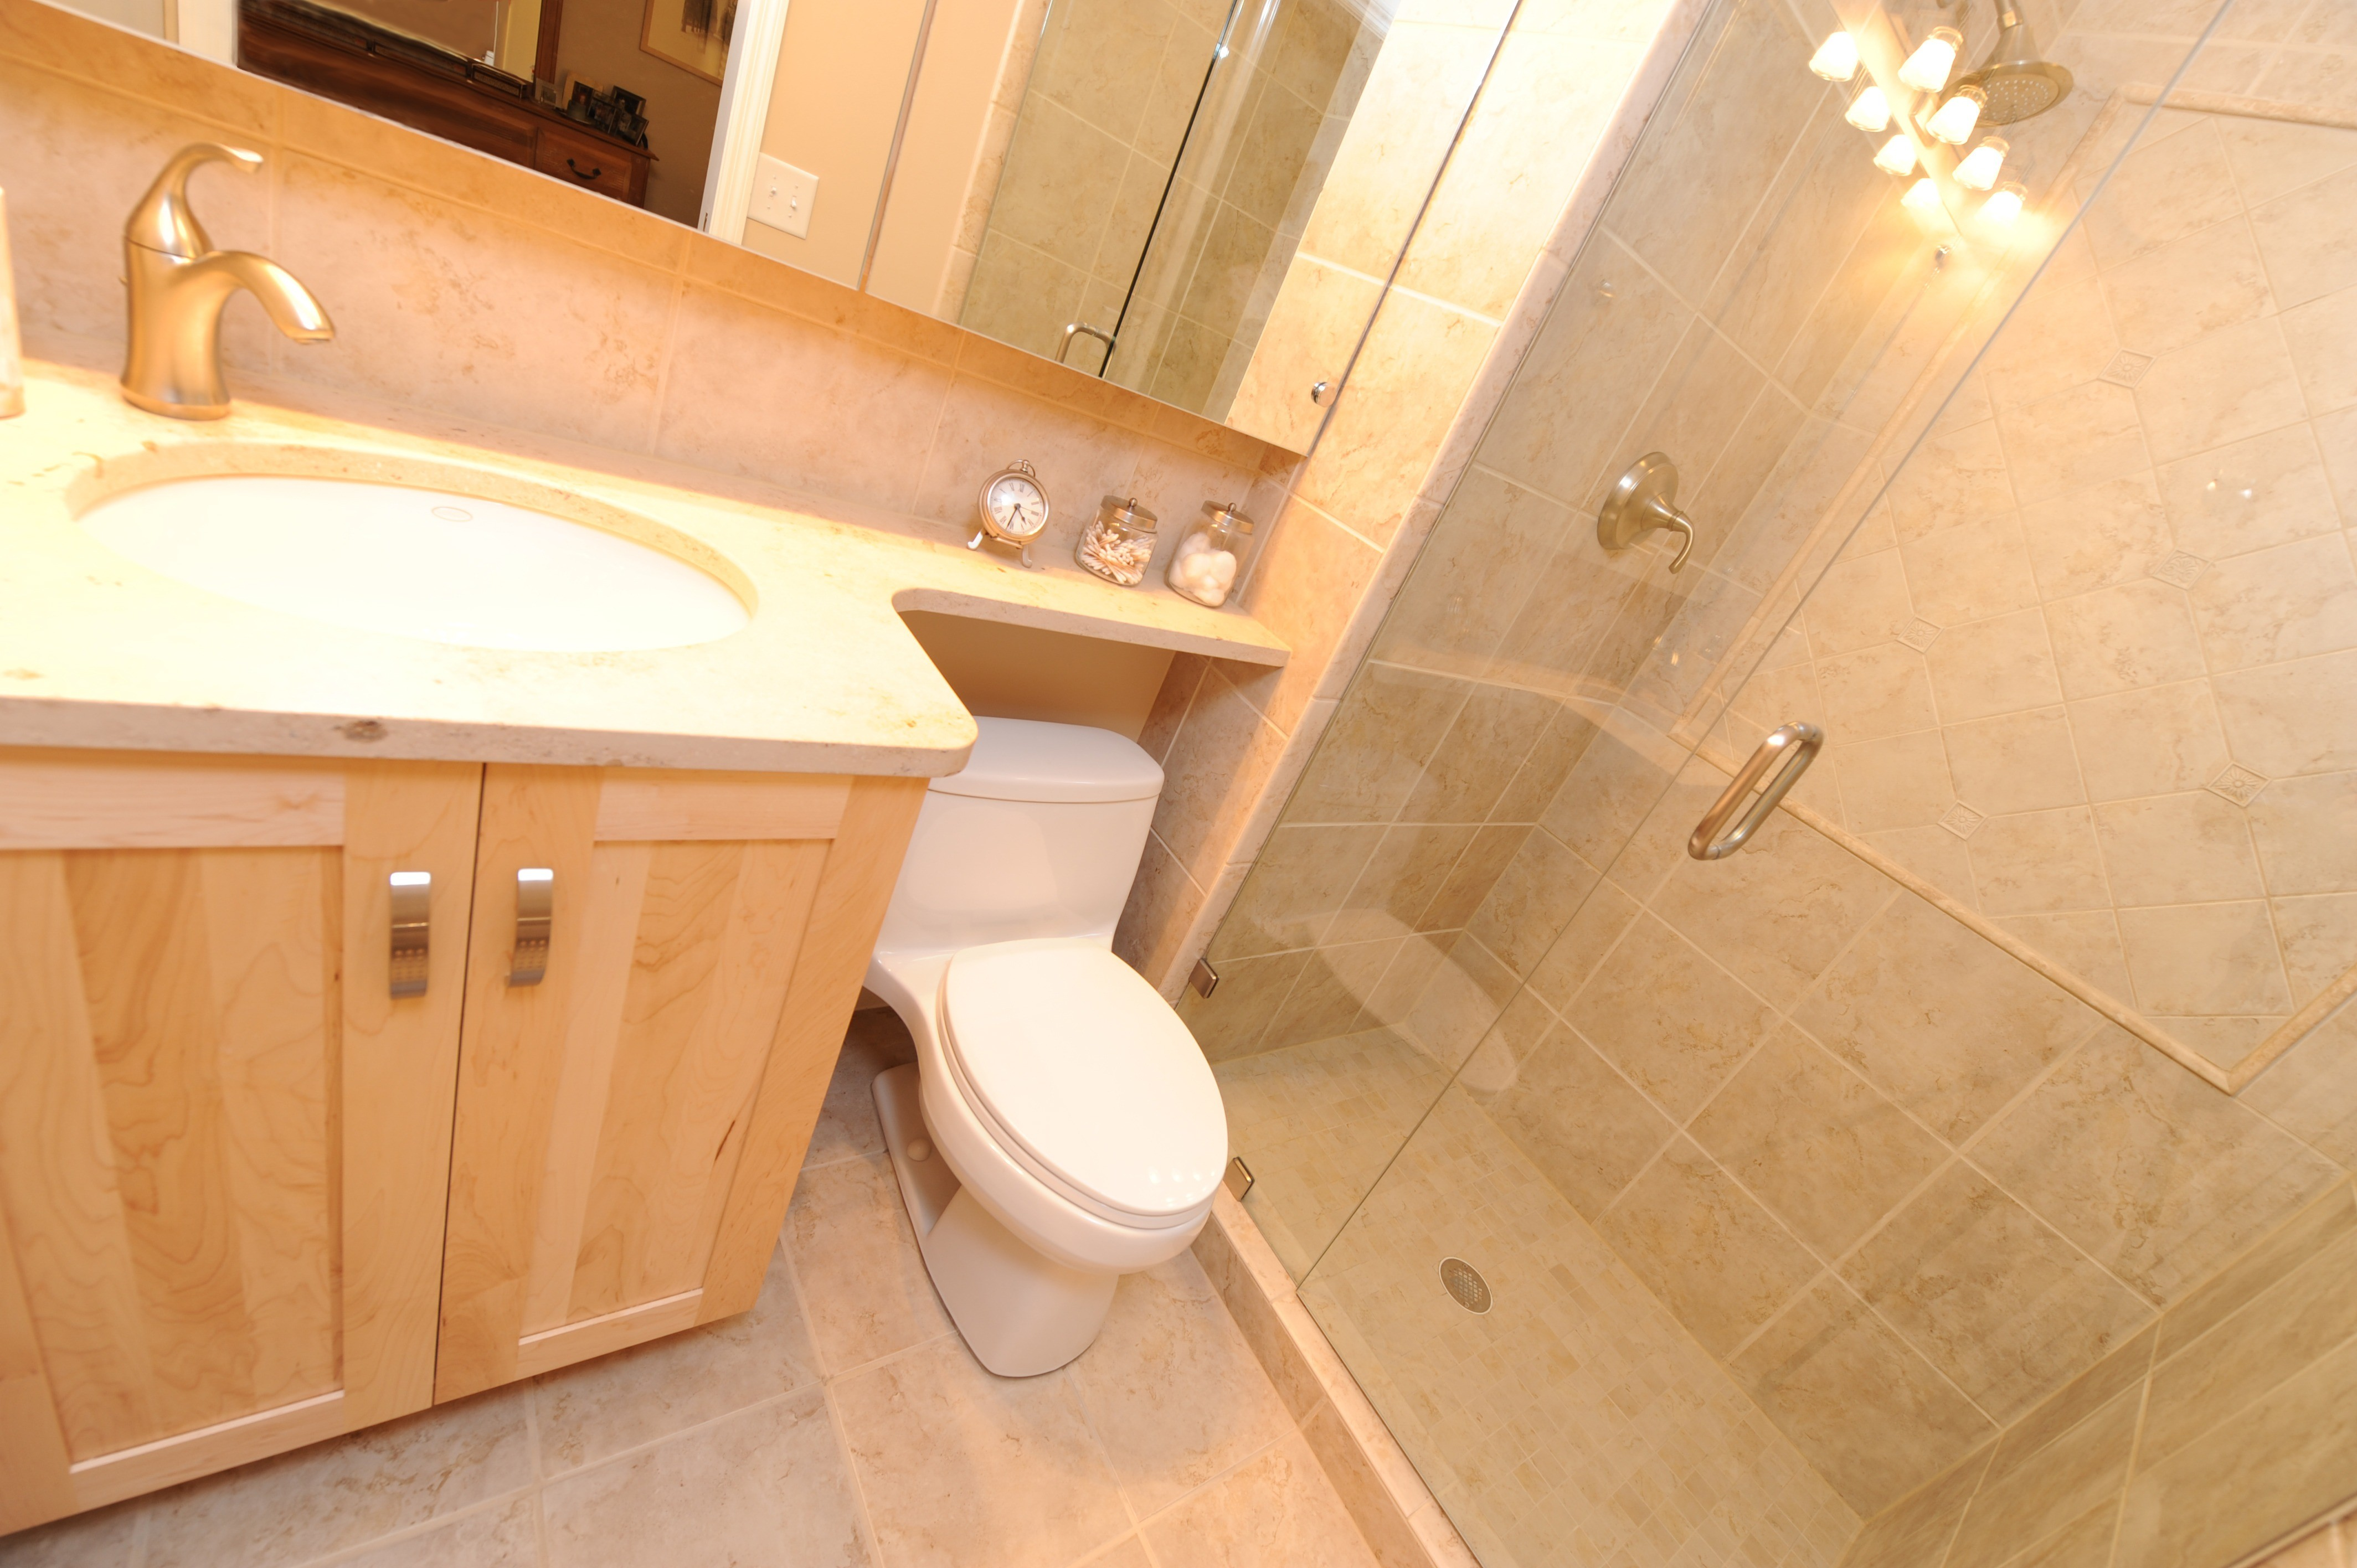 Small changes make a big difference momentum construction for Small bathroom goals